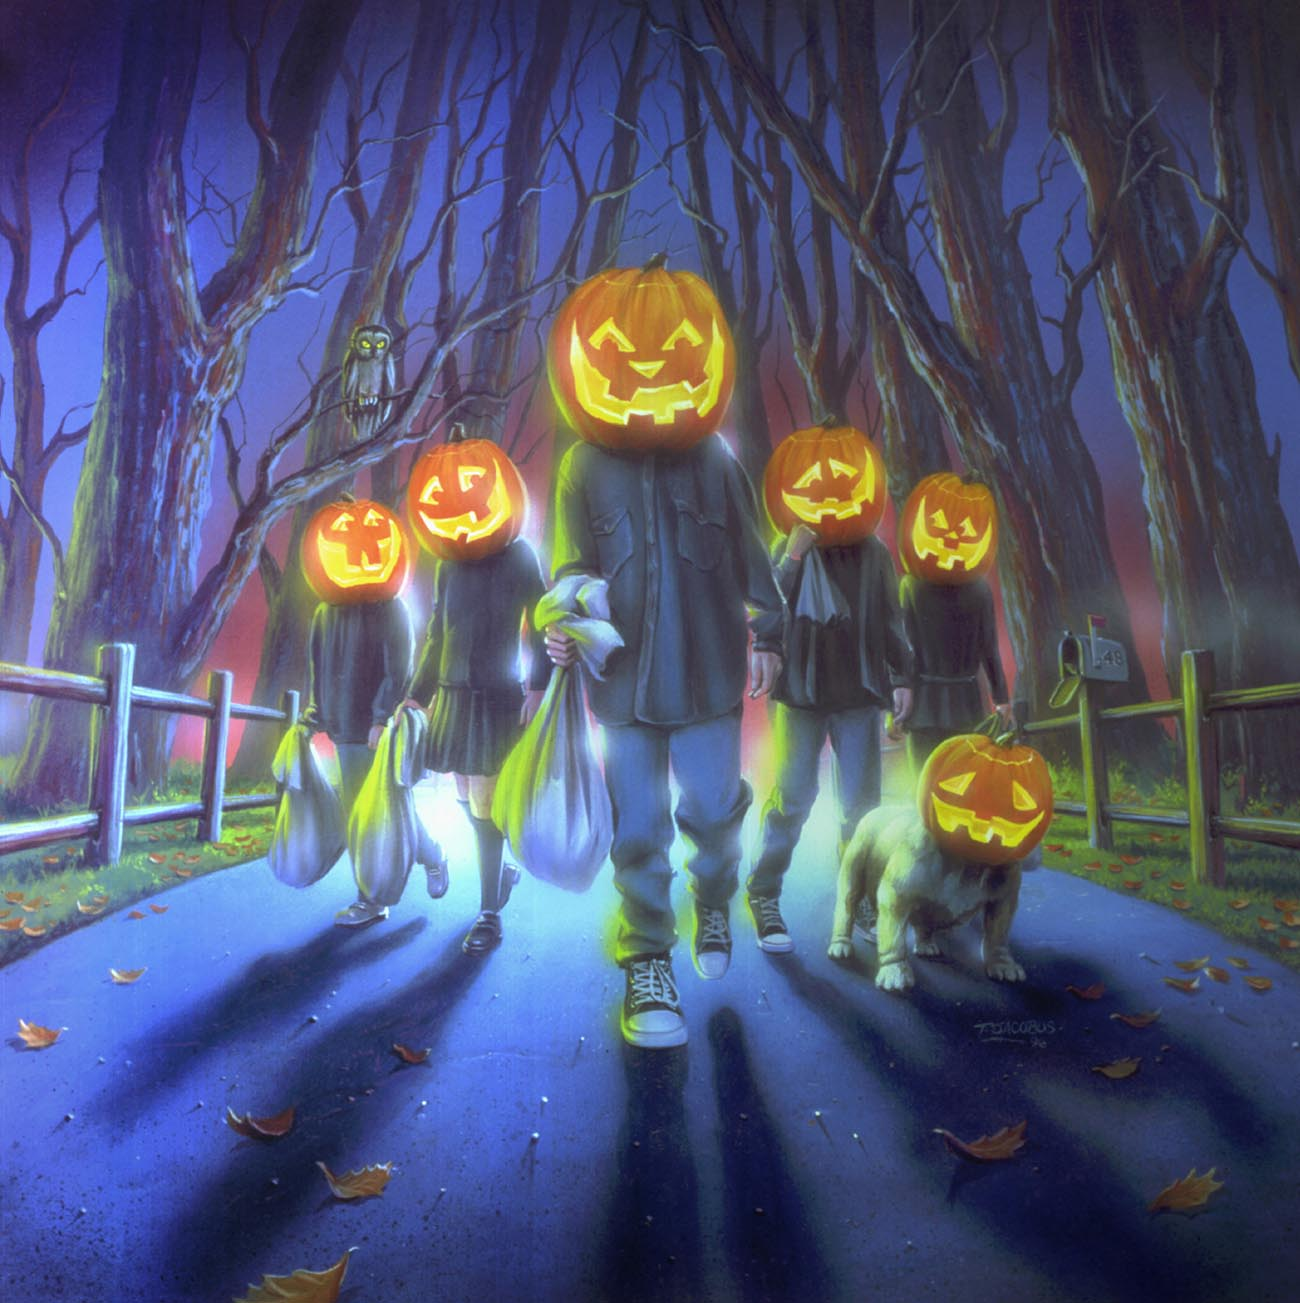 48 – Attack of the Jack-O'-Lanterns